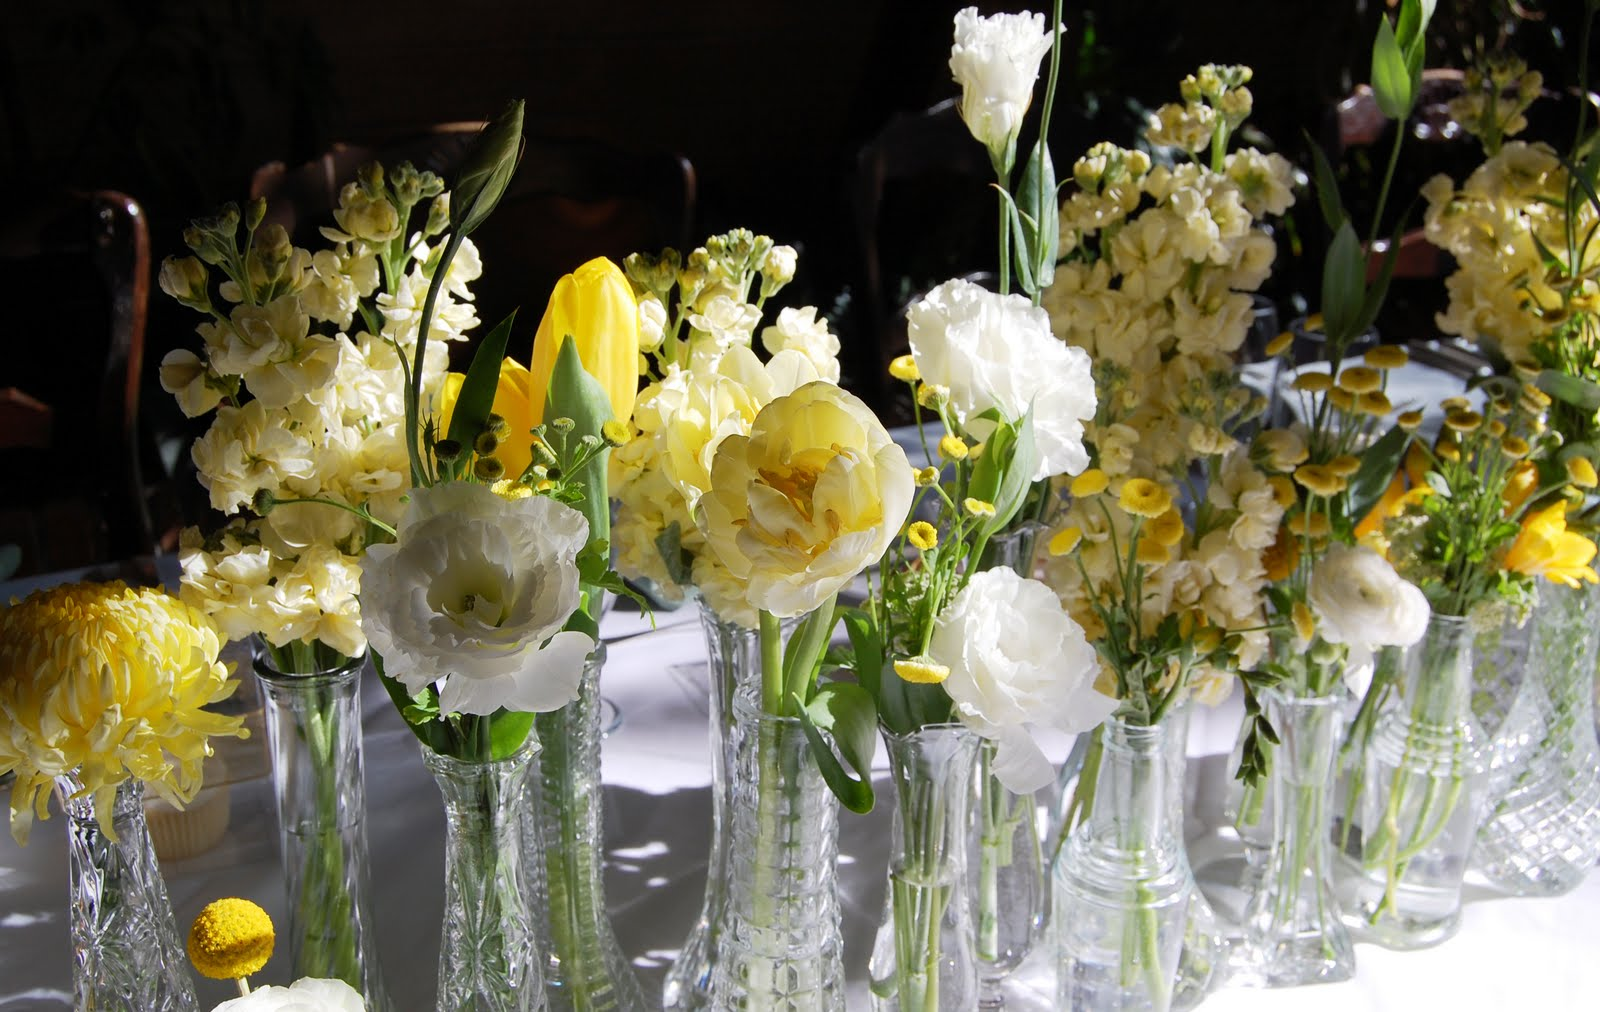 Blossom sweet mikaela at la caille sneak peek collection of twenty vintage bud vases lining the center of the table filled with various blooms mirroring the brides bouquet we also placed bud vases reviewsmspy